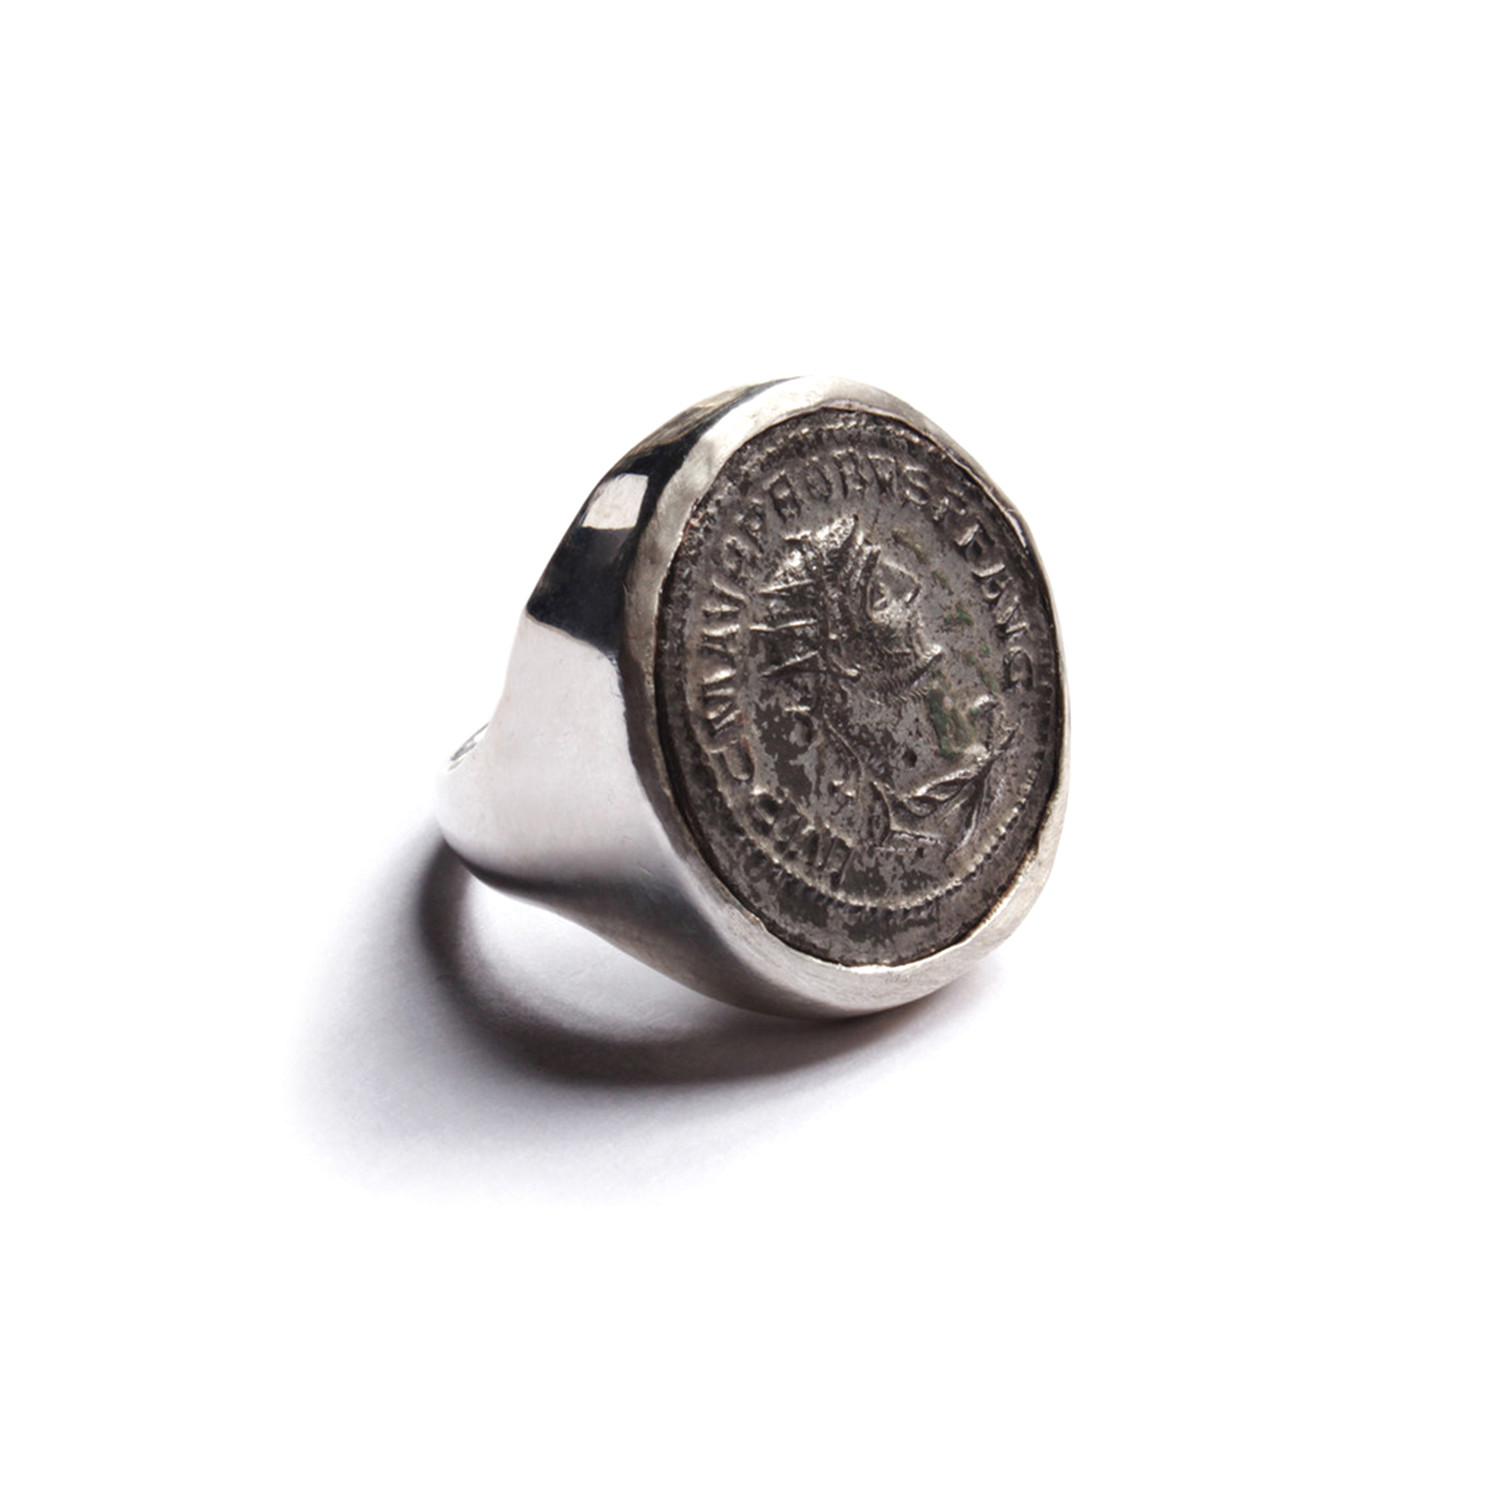 716fdc90abb09 Probus Antique Roman Coin Ring - We Are All Smith - Touch of Modern